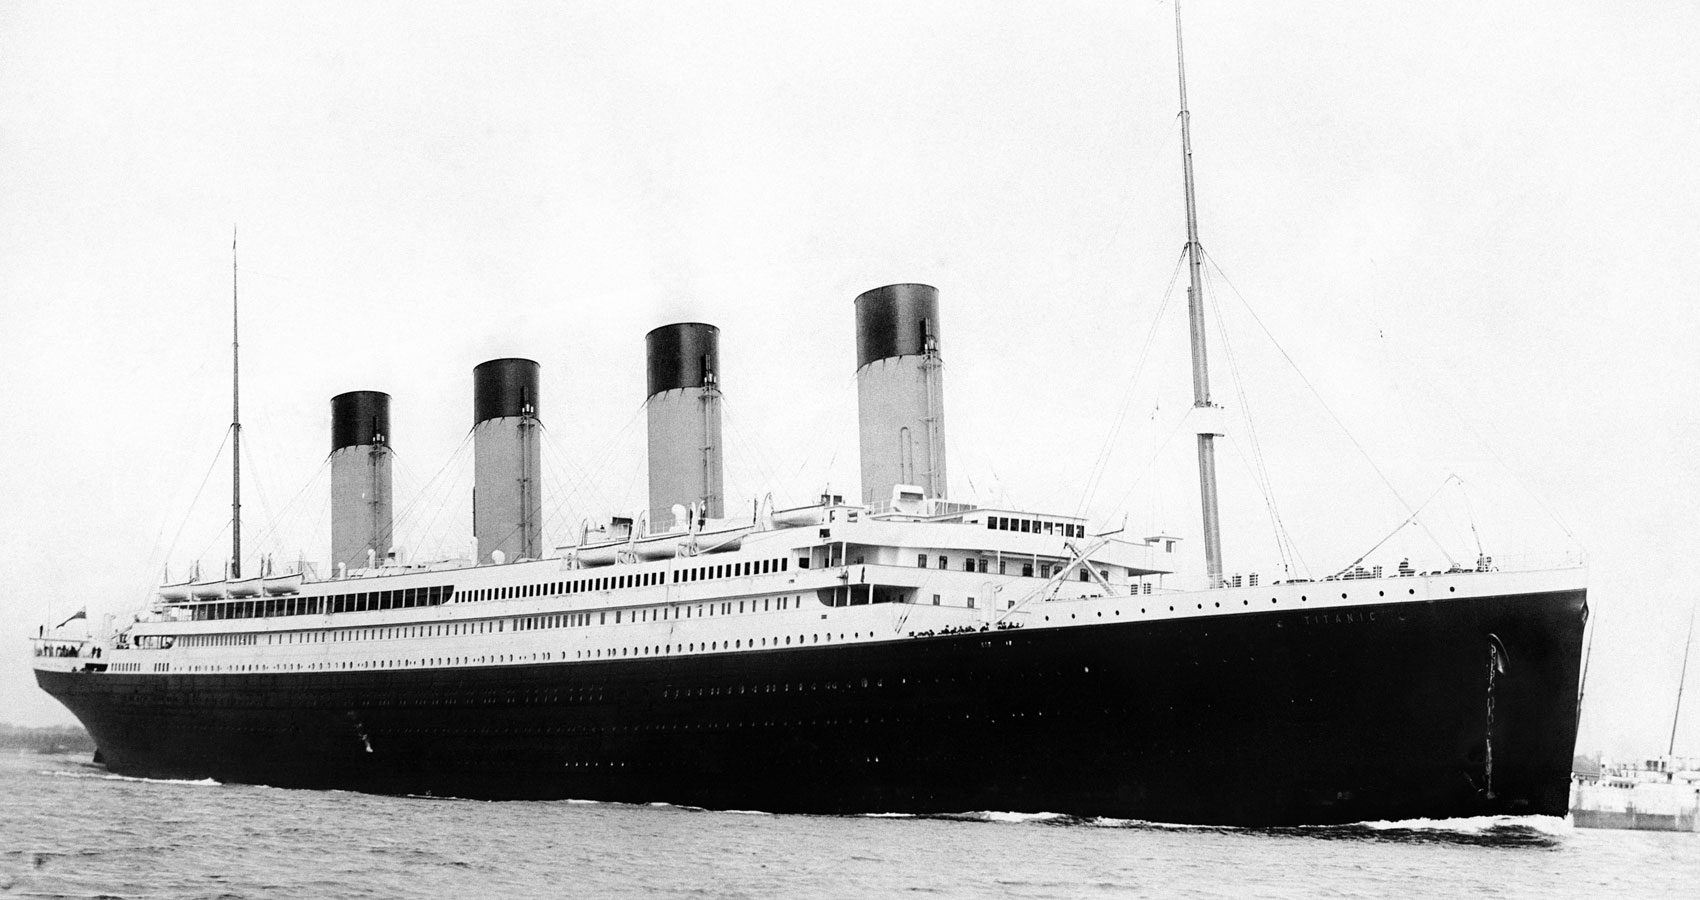 S.O.S. The Titanic written by Anne G at Spillwords.com